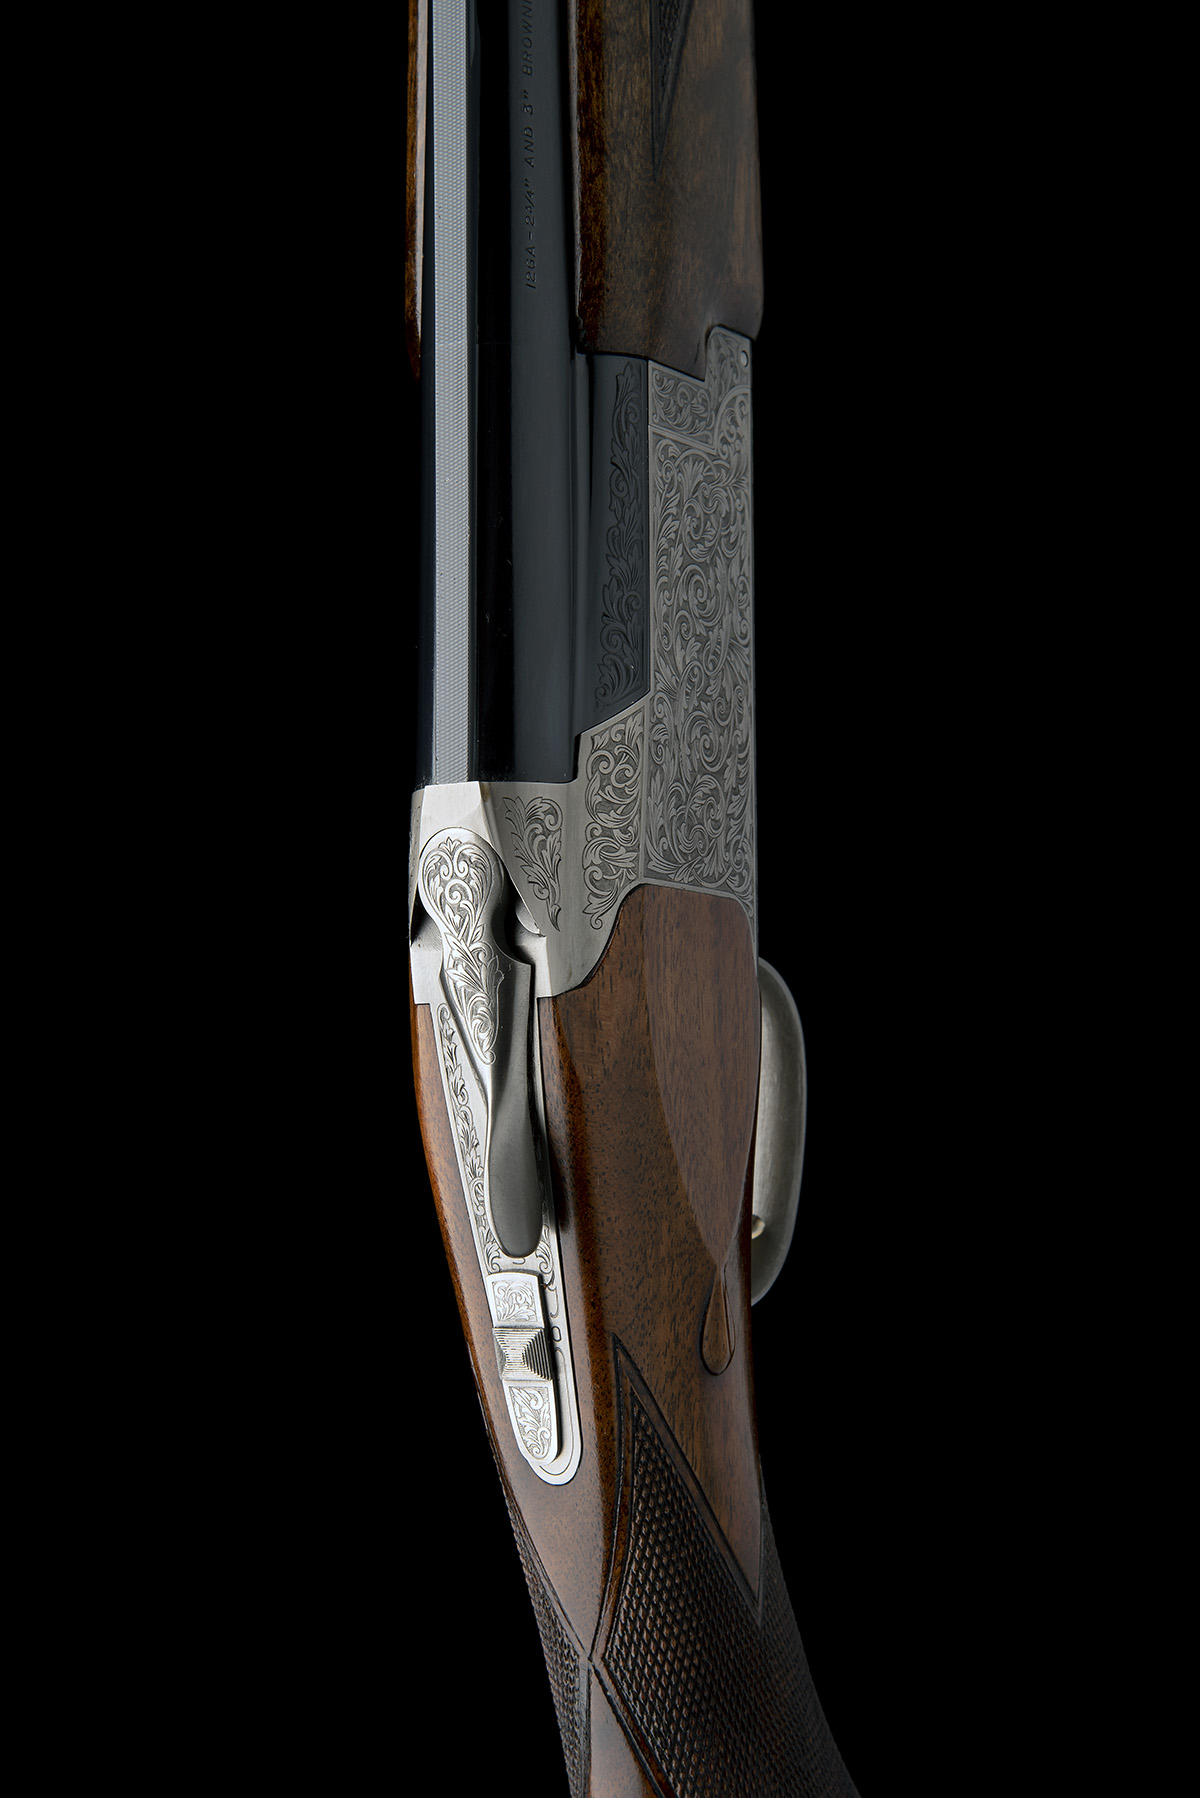 BROWNING A 12-BORE (3IN.) 'B725 SPORTER G5' SINGLE-TRIGGER OVER AND UNDER EJECTOR, serial no. - Image 6 of 9